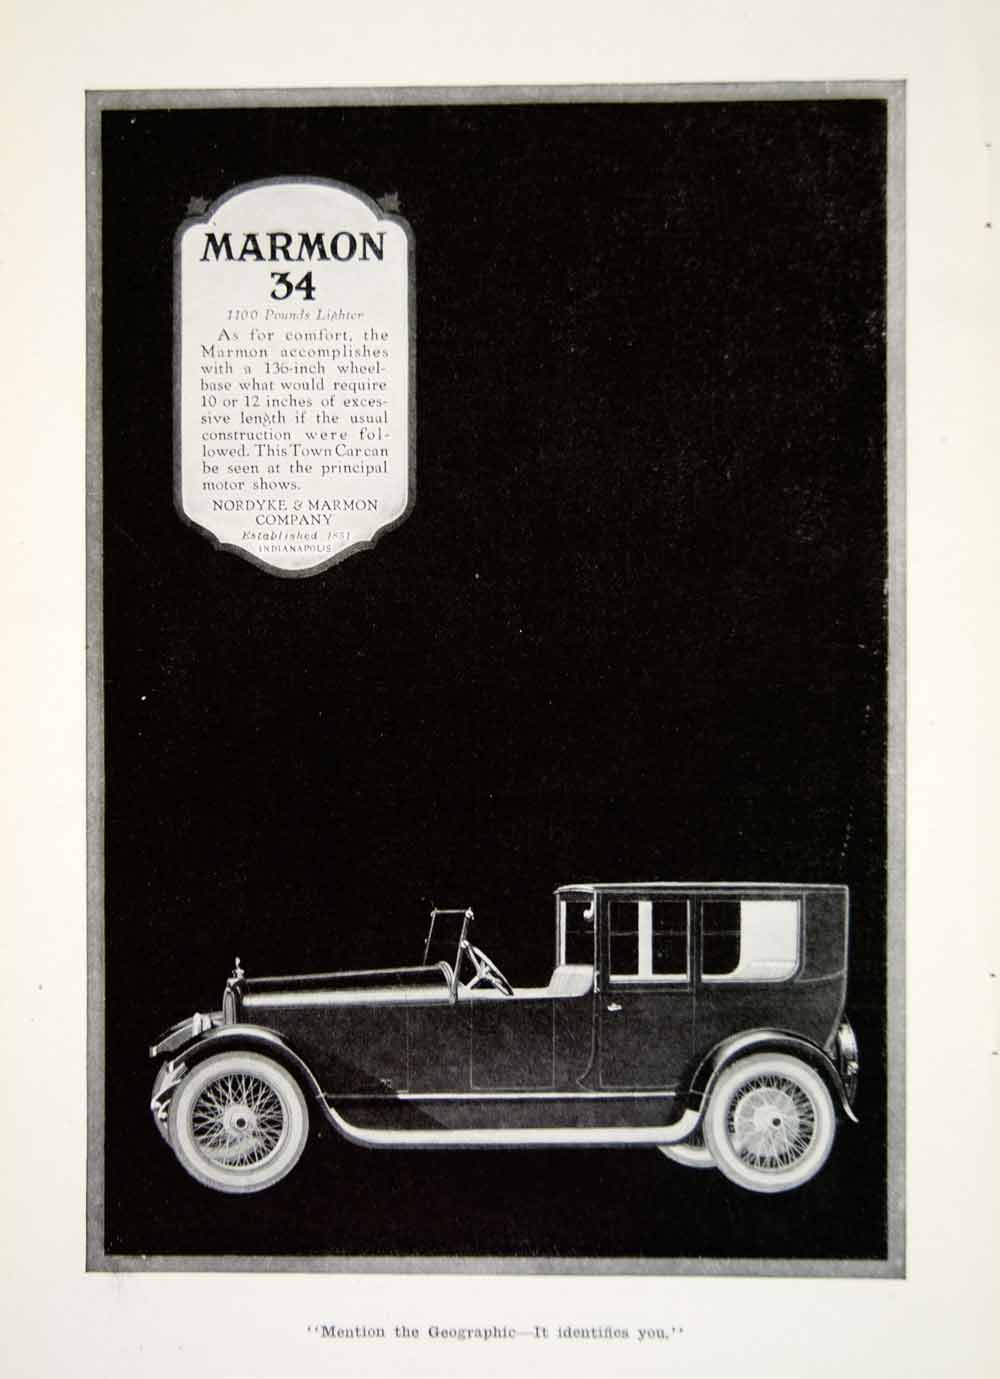 1918 Ad Nordyke Marmon Company 34 Automobile Car Vehicle American Image YNG2